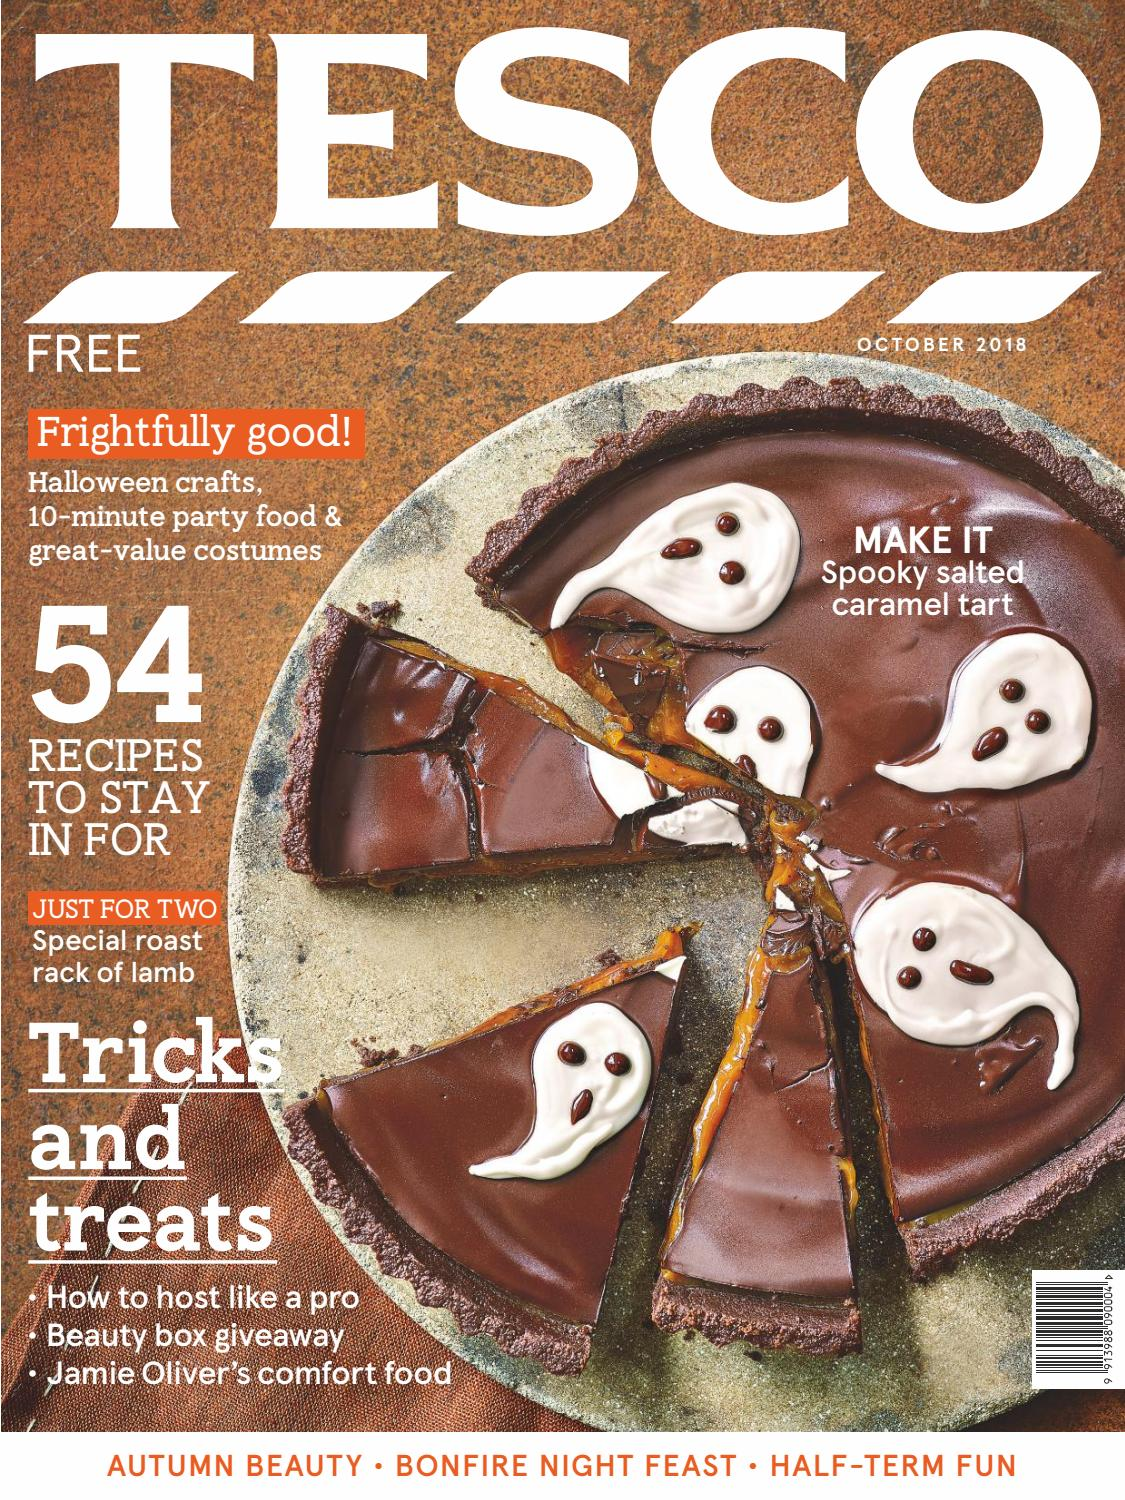 e43246871 Tesco Magazine - October 2018 by Tesco magazine - issuu